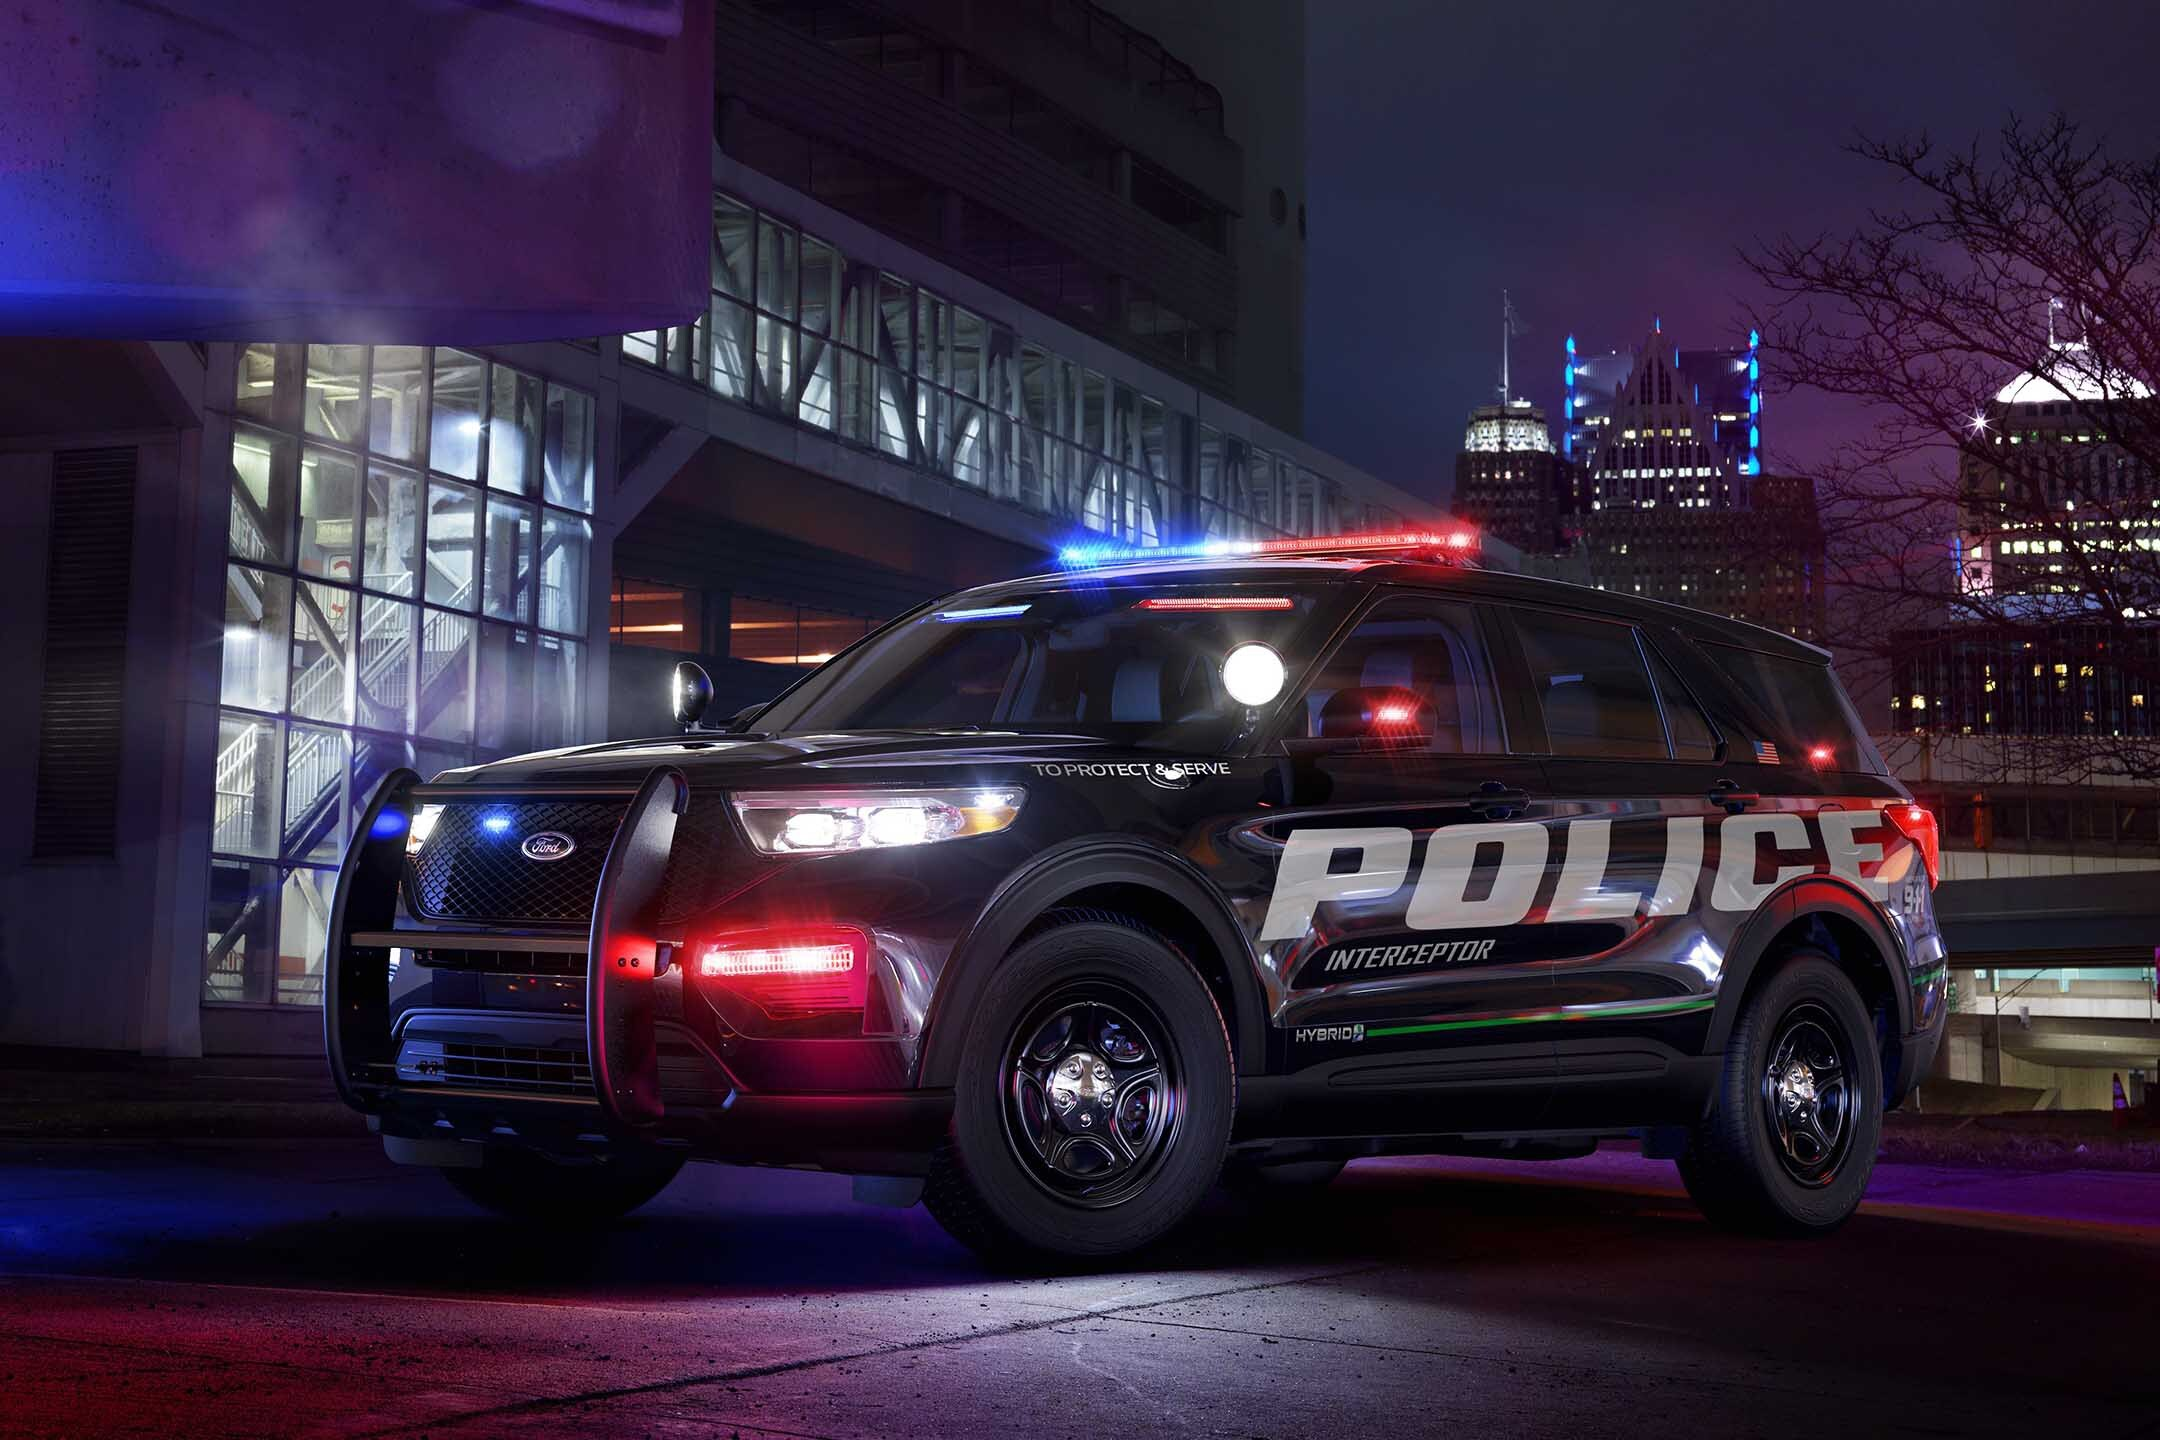 POLICE FULL SIZE SUV